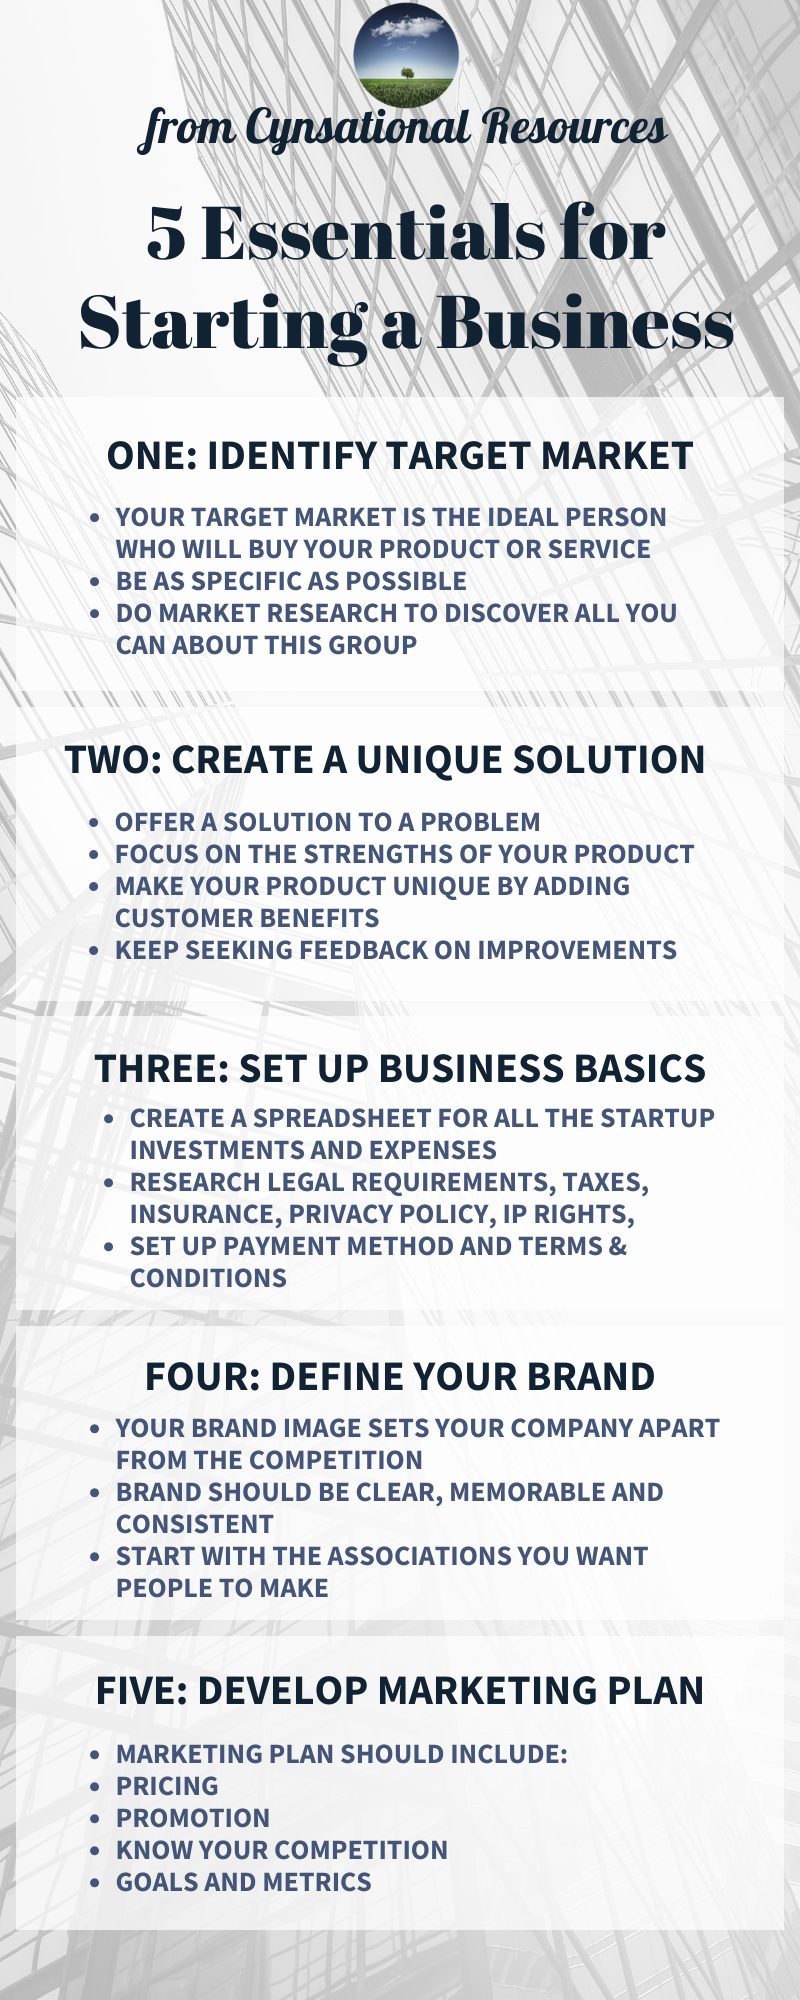 5 Essentials for Starting a Business